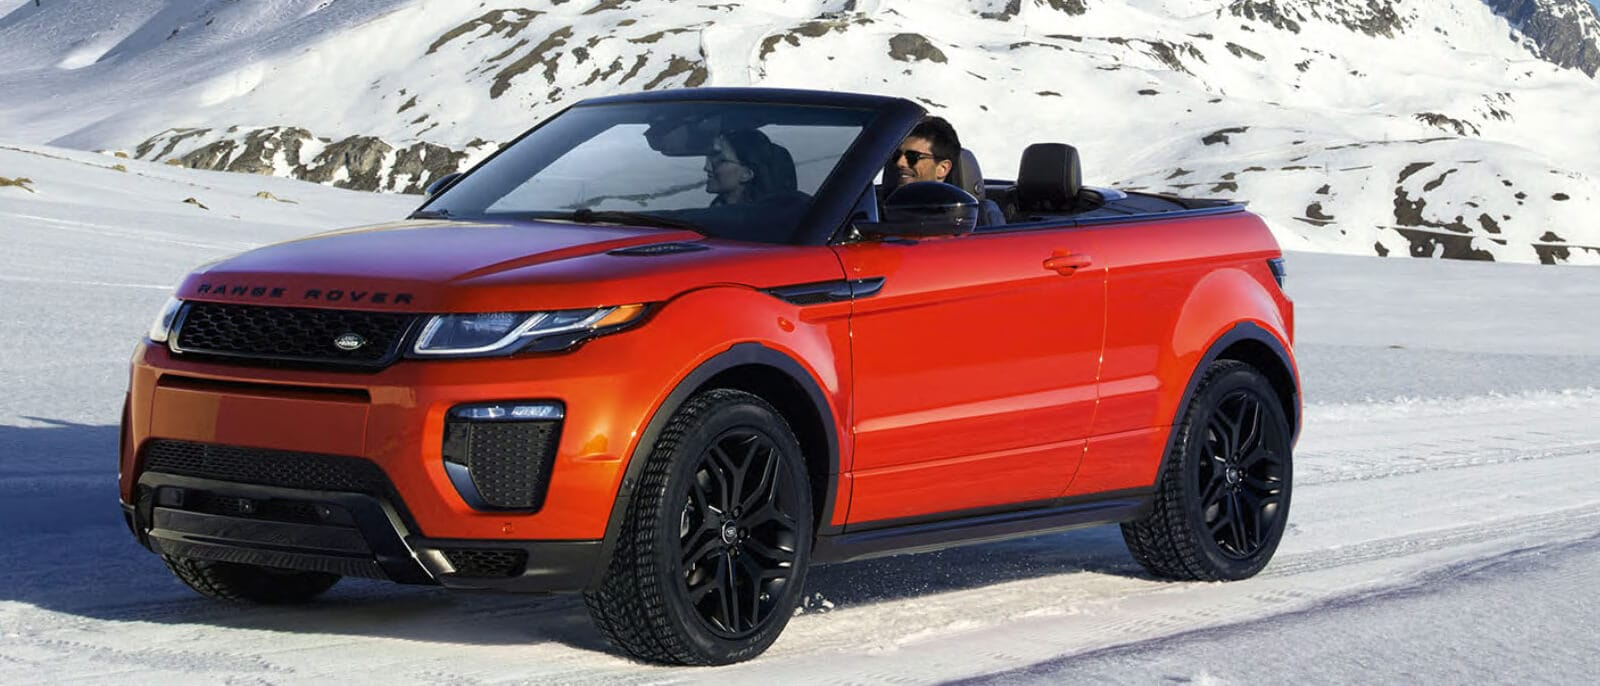 2017 land rover range rover evoque convertible. Black Bedroom Furniture Sets. Home Design Ideas